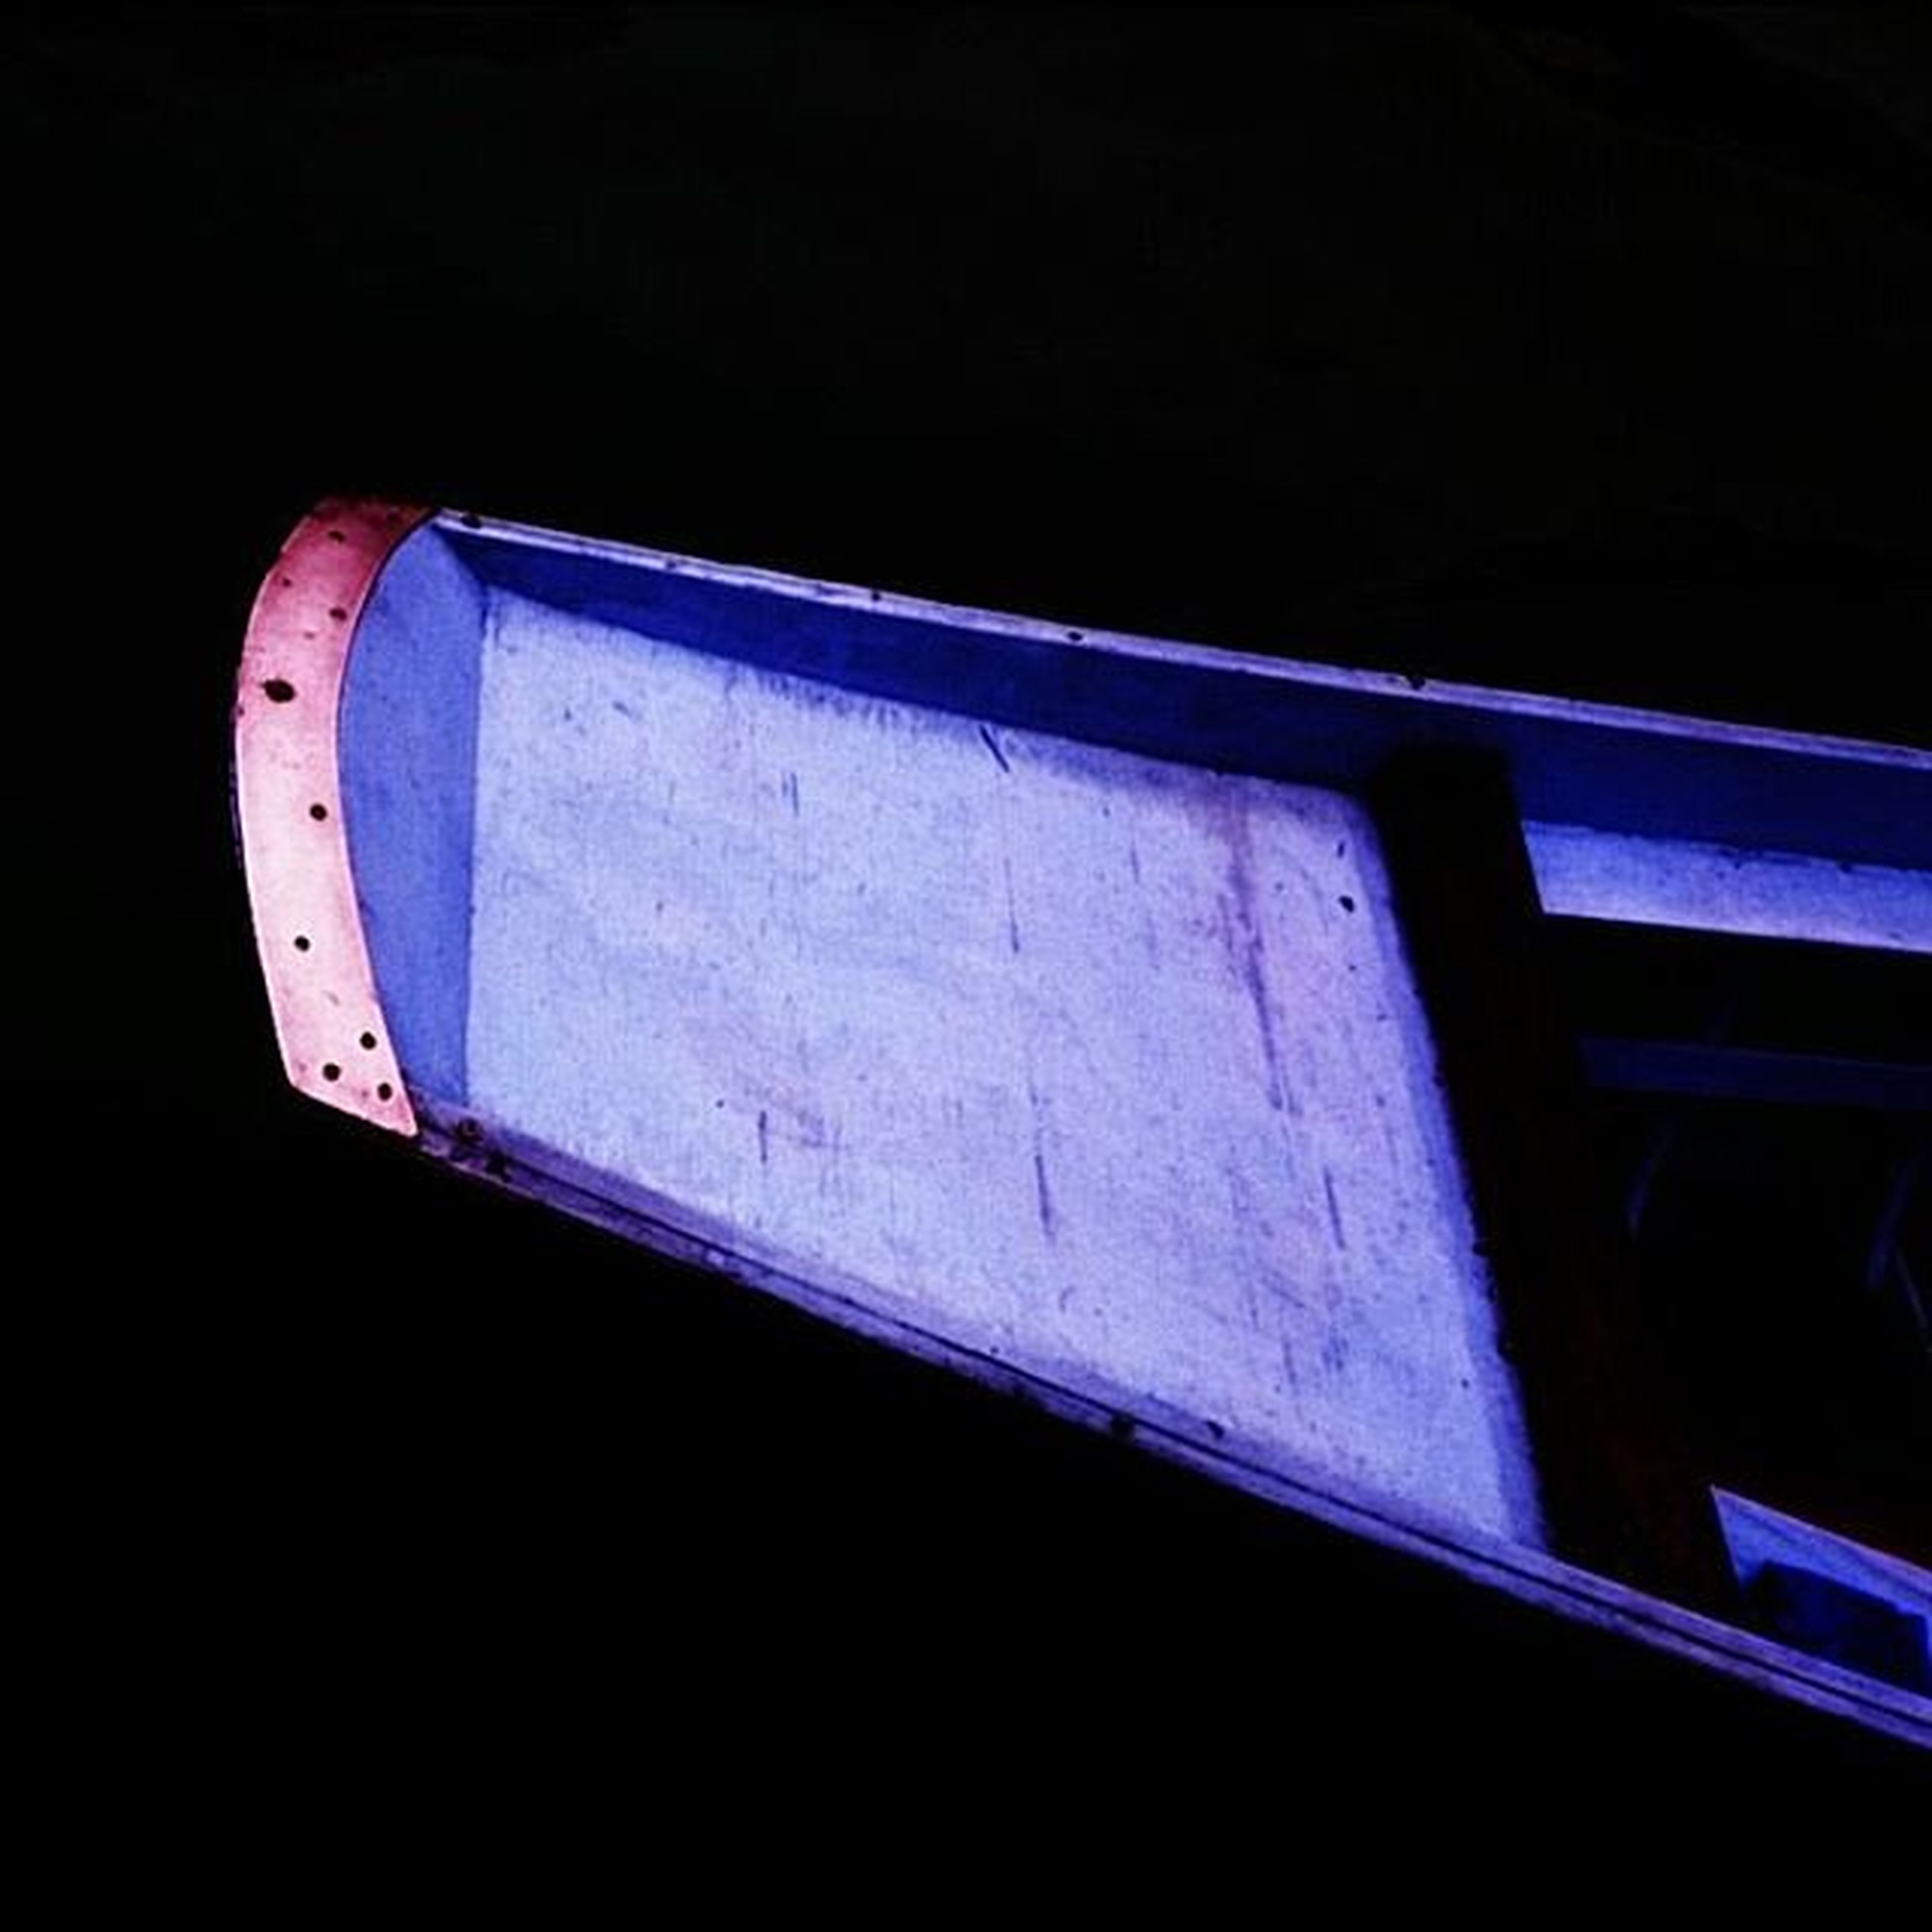 night, copy space, blue, low angle view, clear sky, transportation, built structure, dark, architecture, no people, outdoors, wood - material, metal, part of, illuminated, railing, close-up, mode of transport, boat